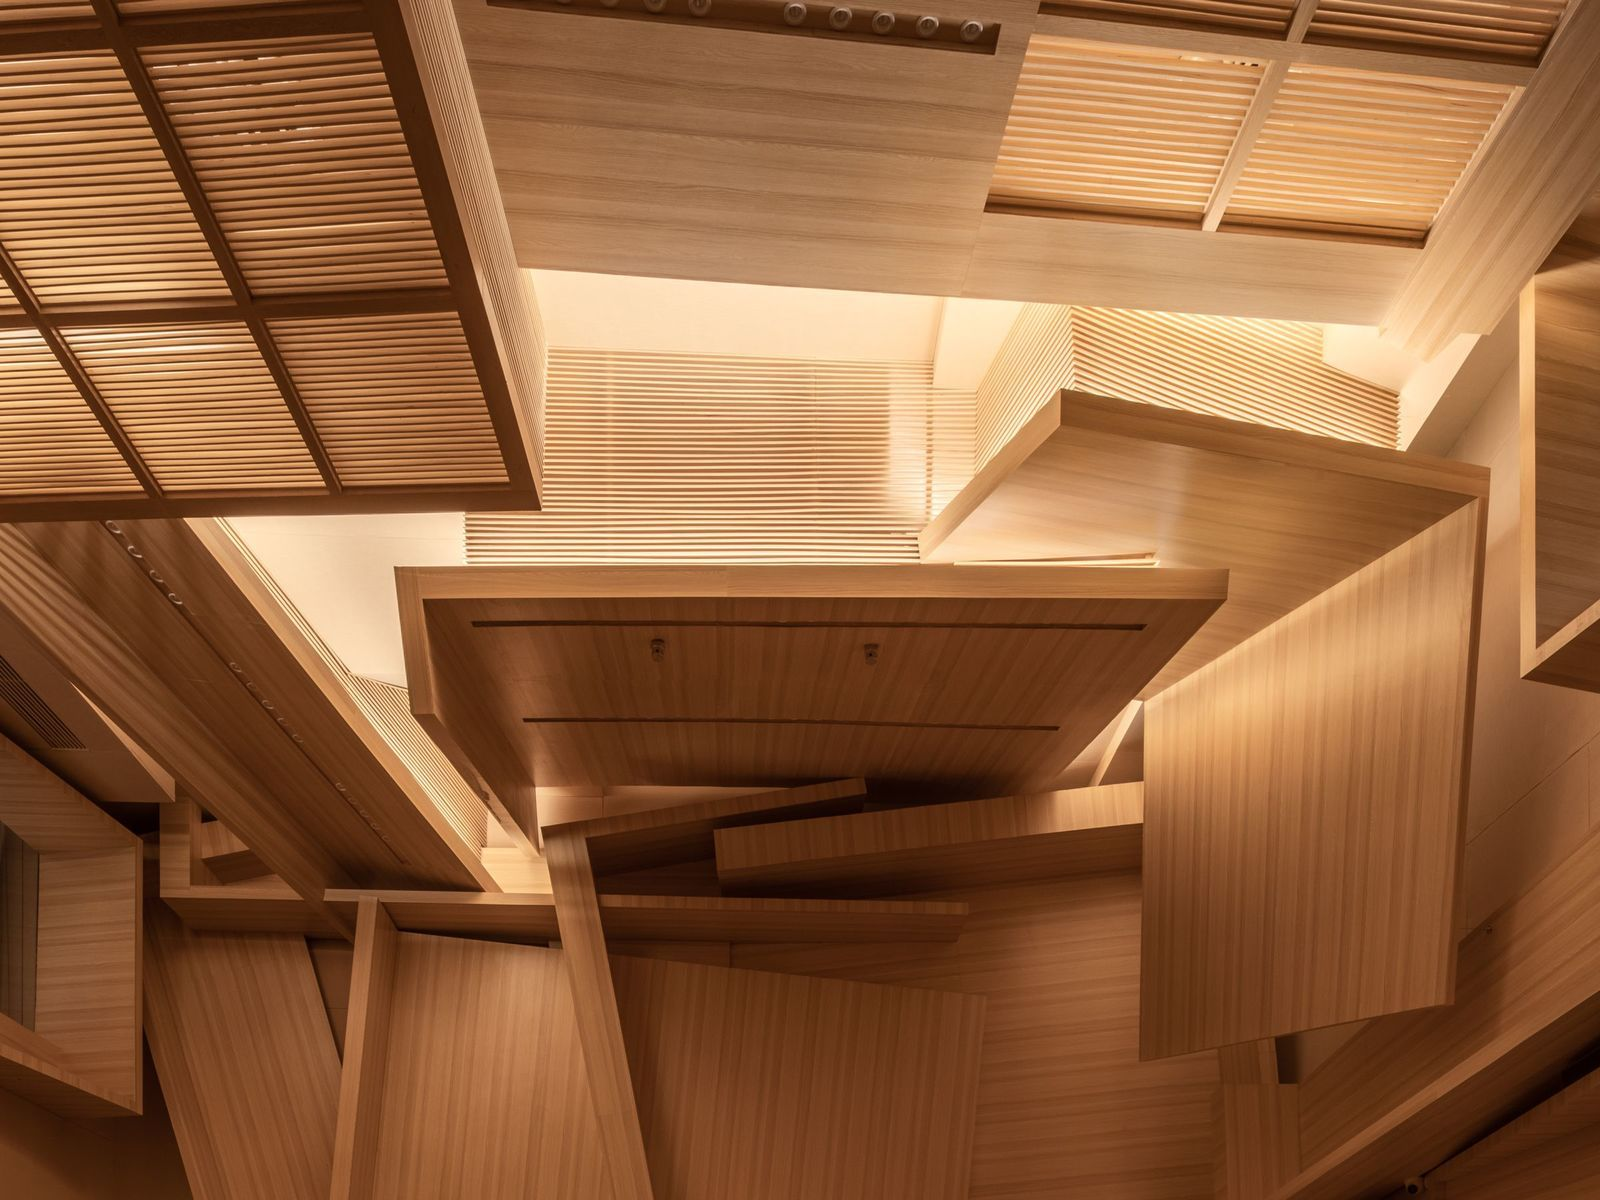 GUANGZHOU GRAND THEATER MEILAN SMALL SYMPHONY RECORDING STUDIO by DOMANI ARCHITECTURAL CONCEPTS